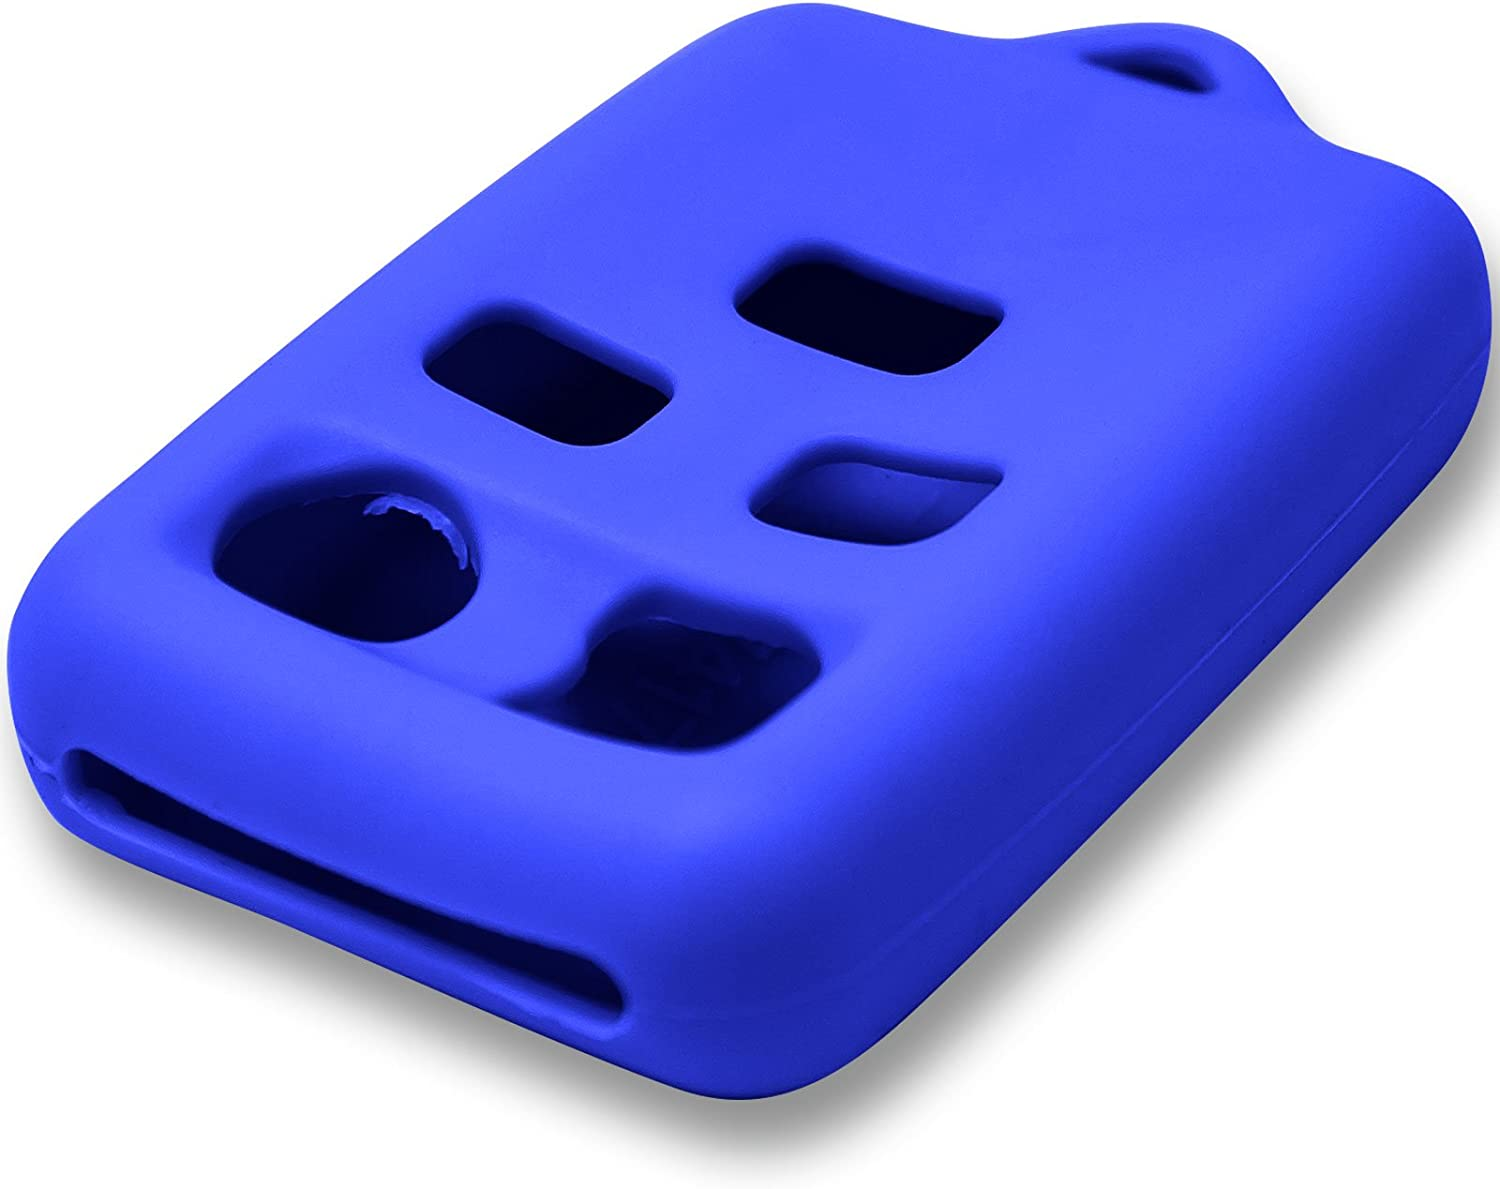 Blue Keyless2Go New Silicone Cover Protective Case for 5 Button Remote Key Fob with FCC CWTWB1U511